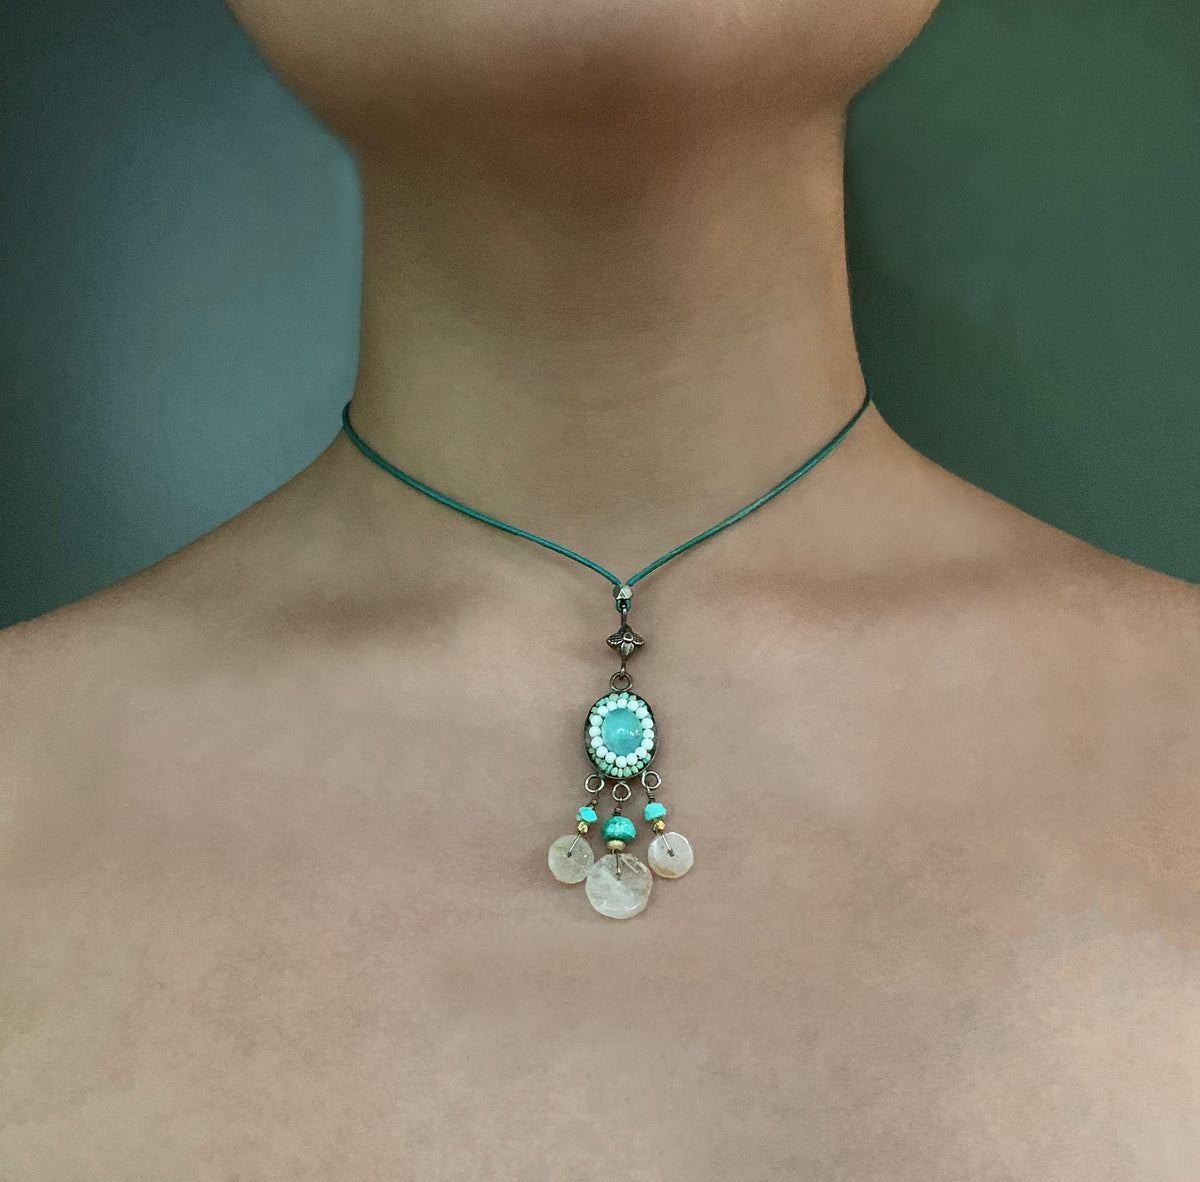 Peruvian Opal with Tibetan Turquoise necklace